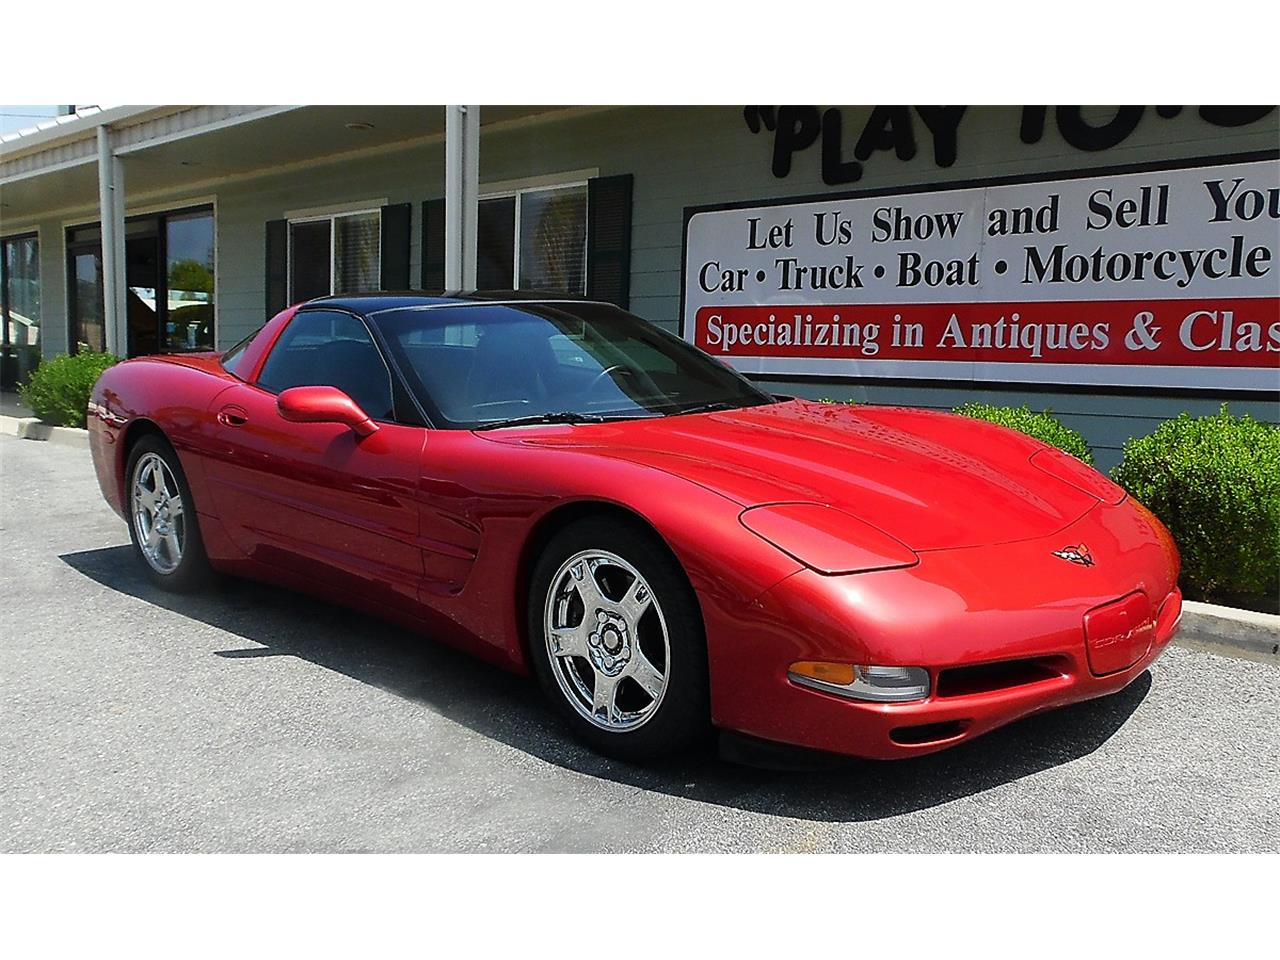 Large Picture of 1997 Chevrolet Corvette located in Redlands California - $21,995.00 - QDLE